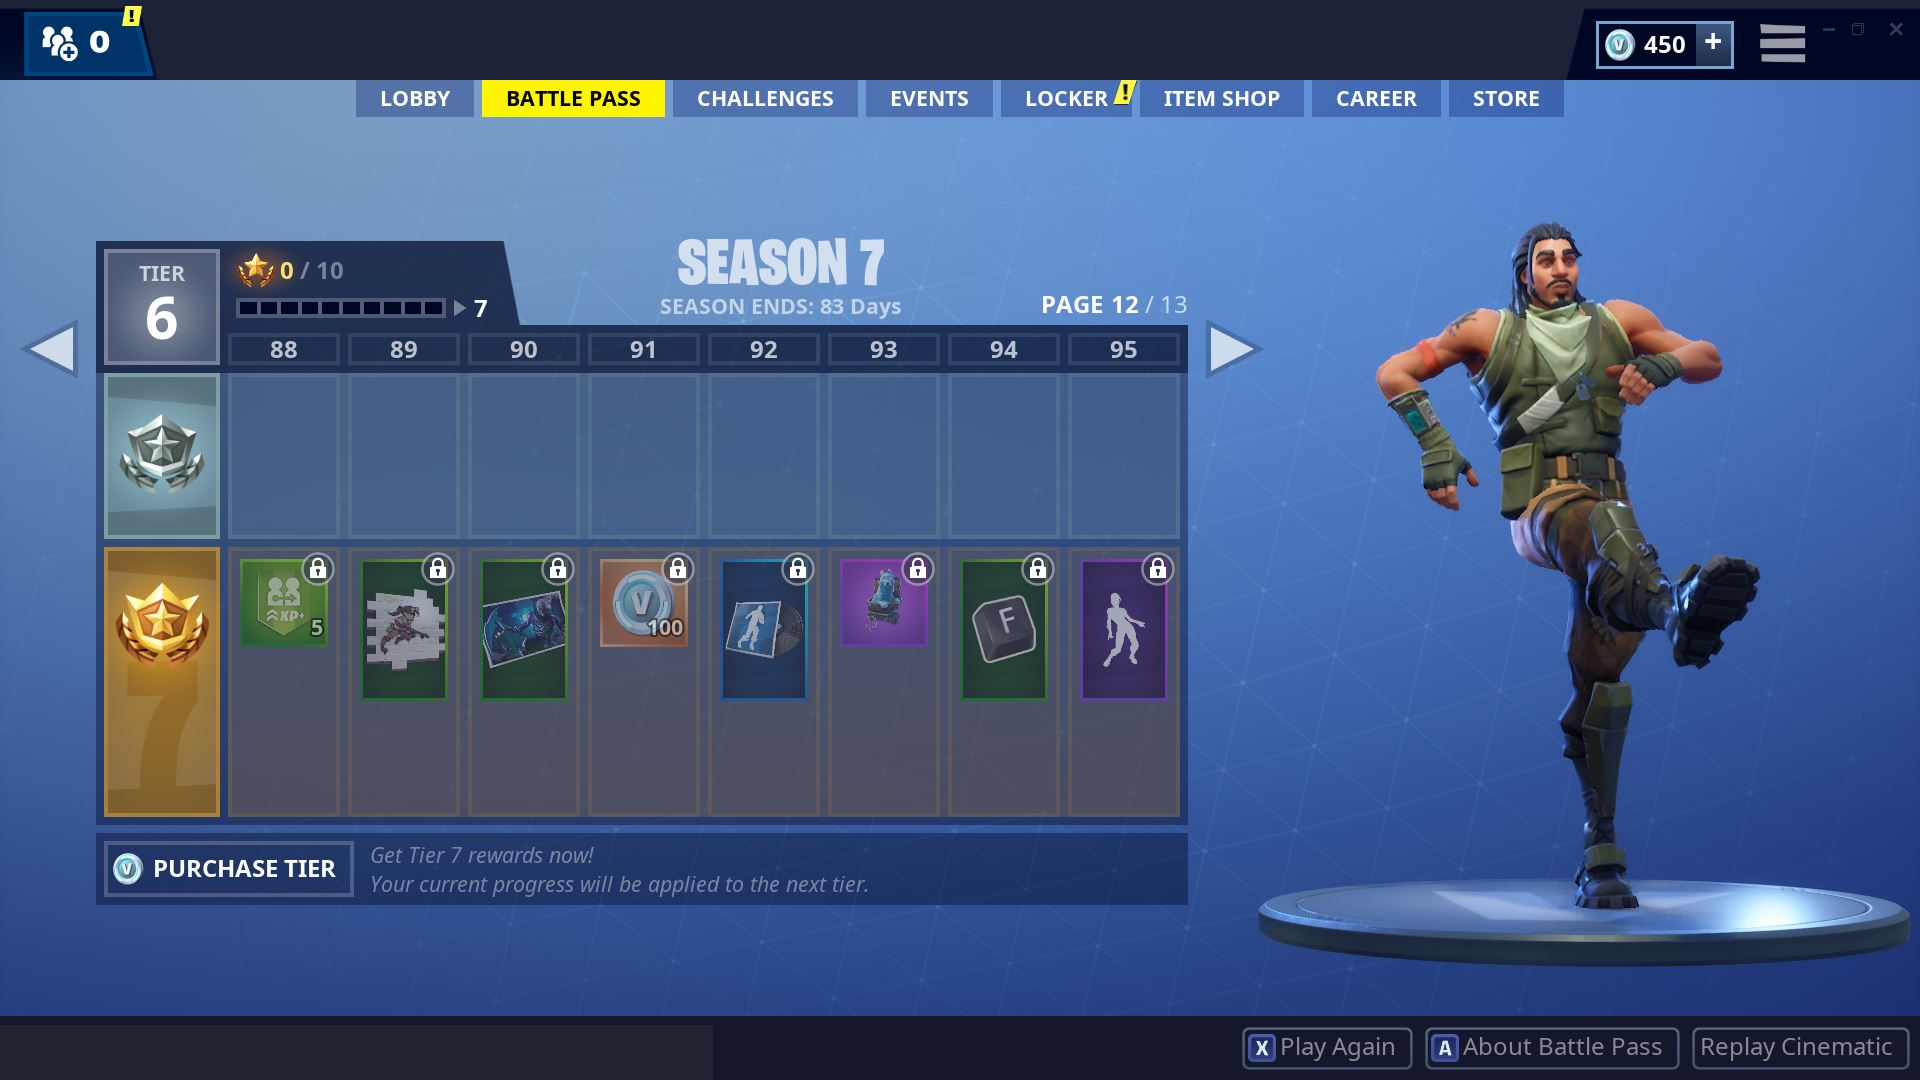 Fortnite Season 7 Battle Pass Page 12